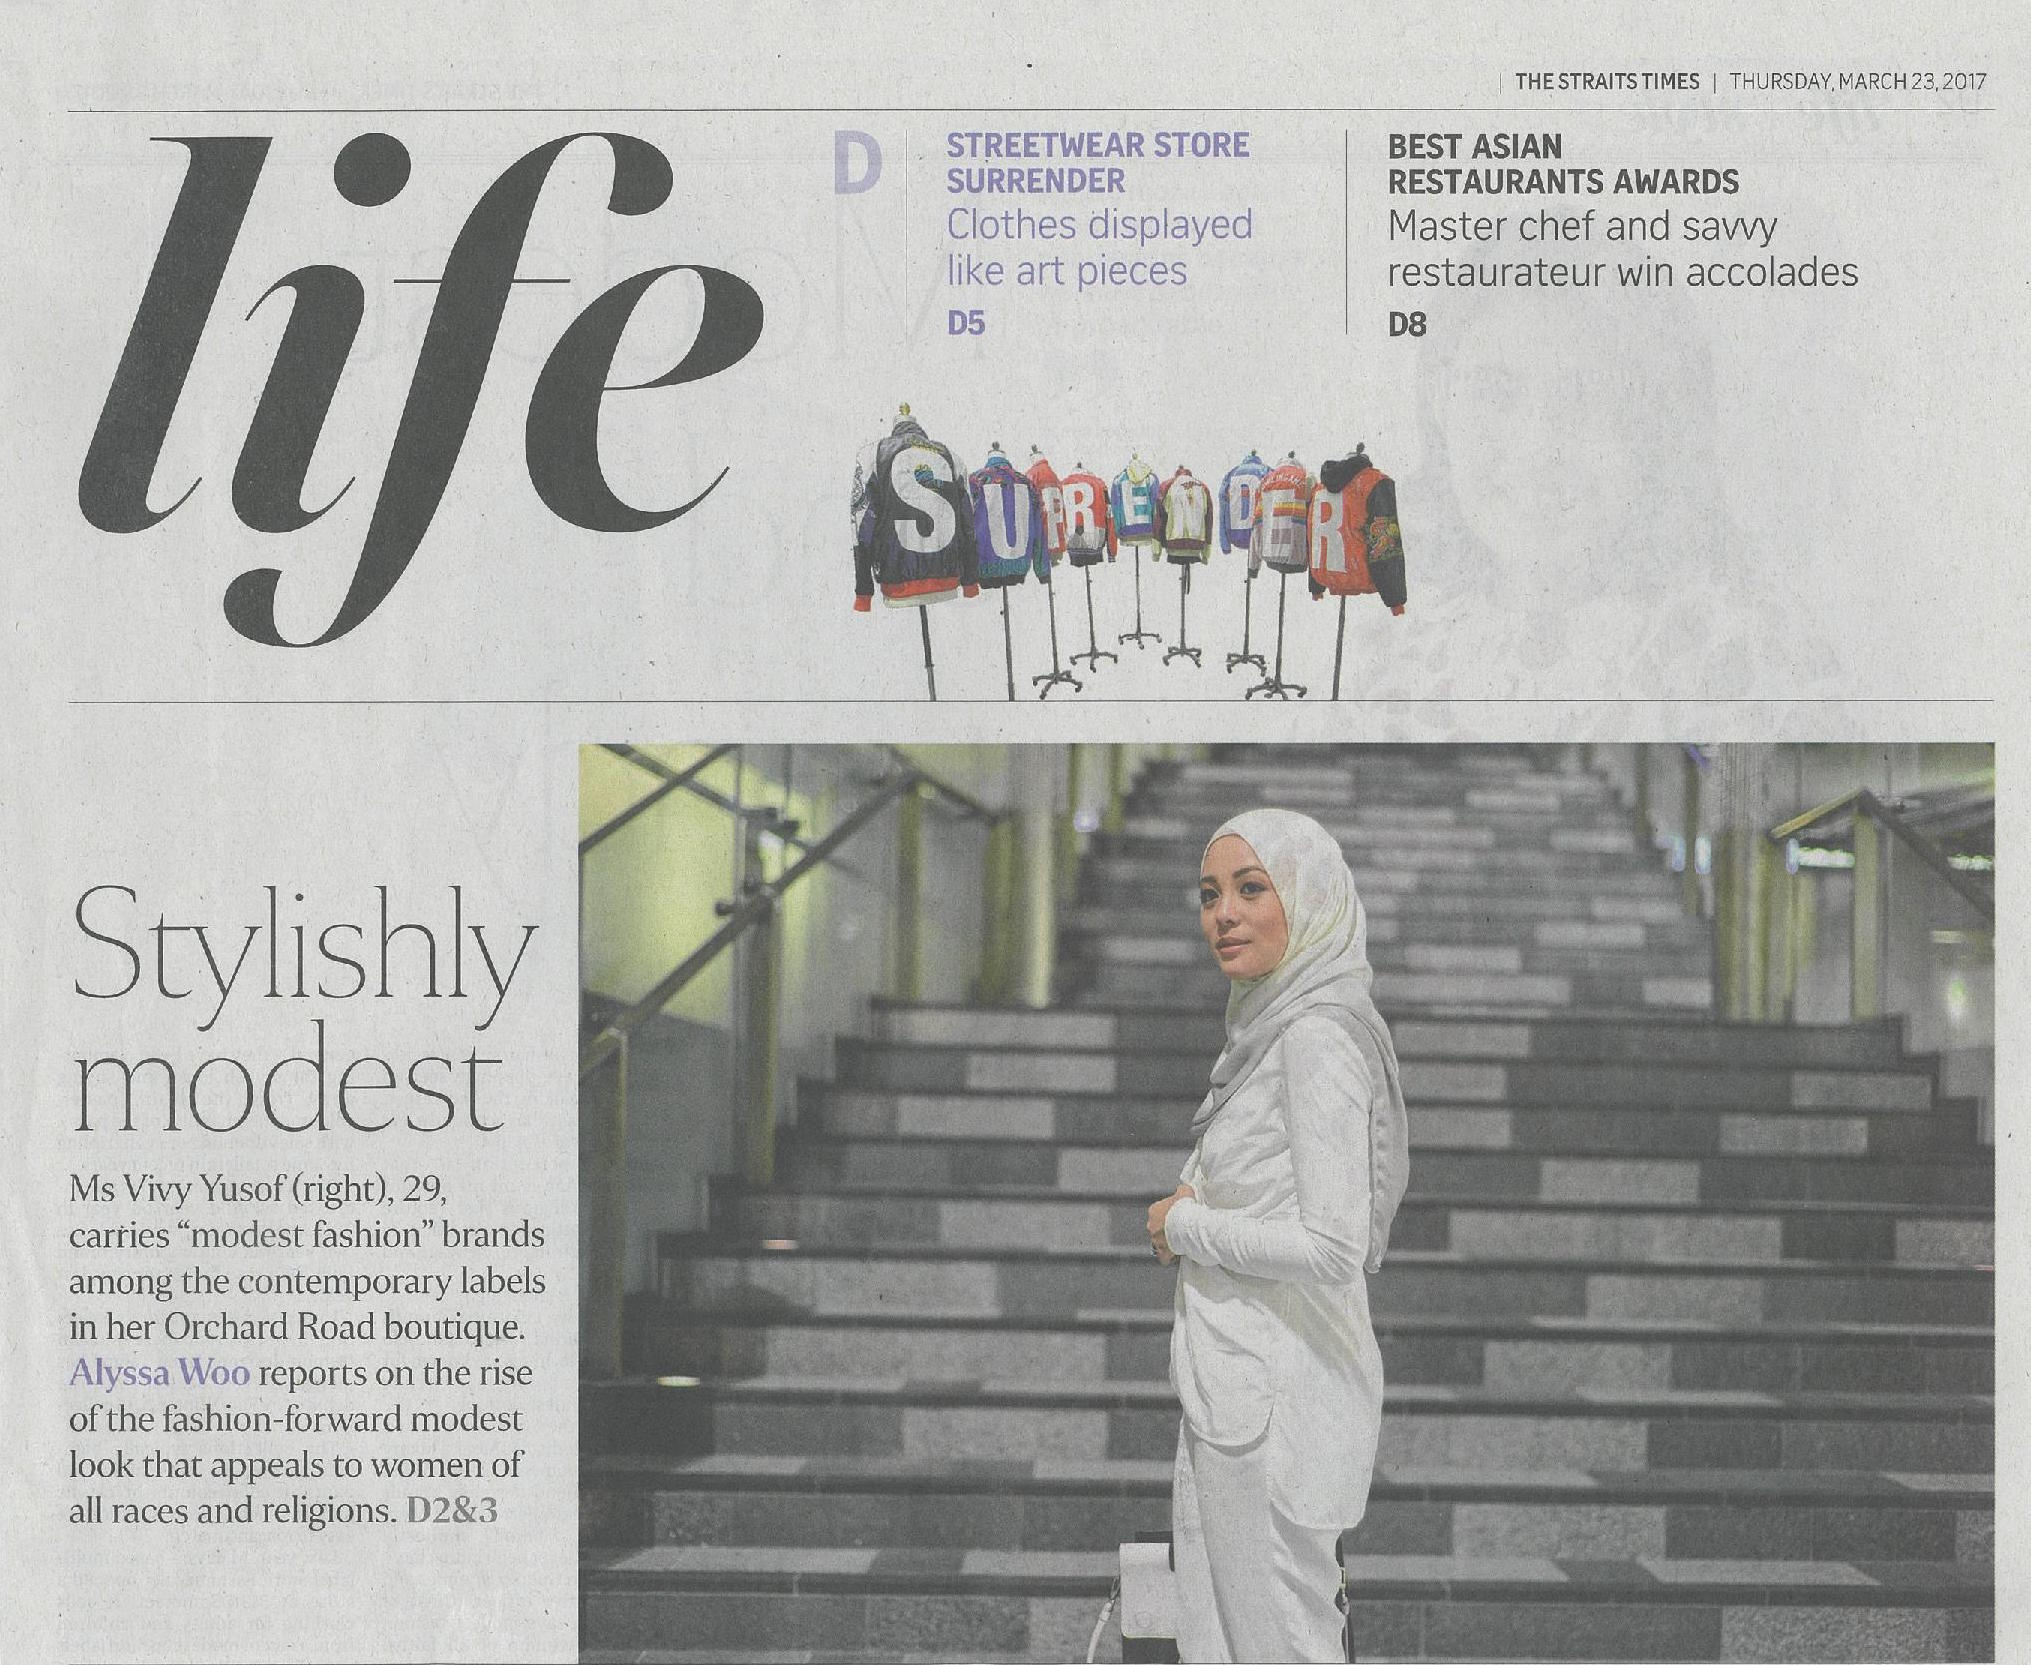 The Straits Times - March